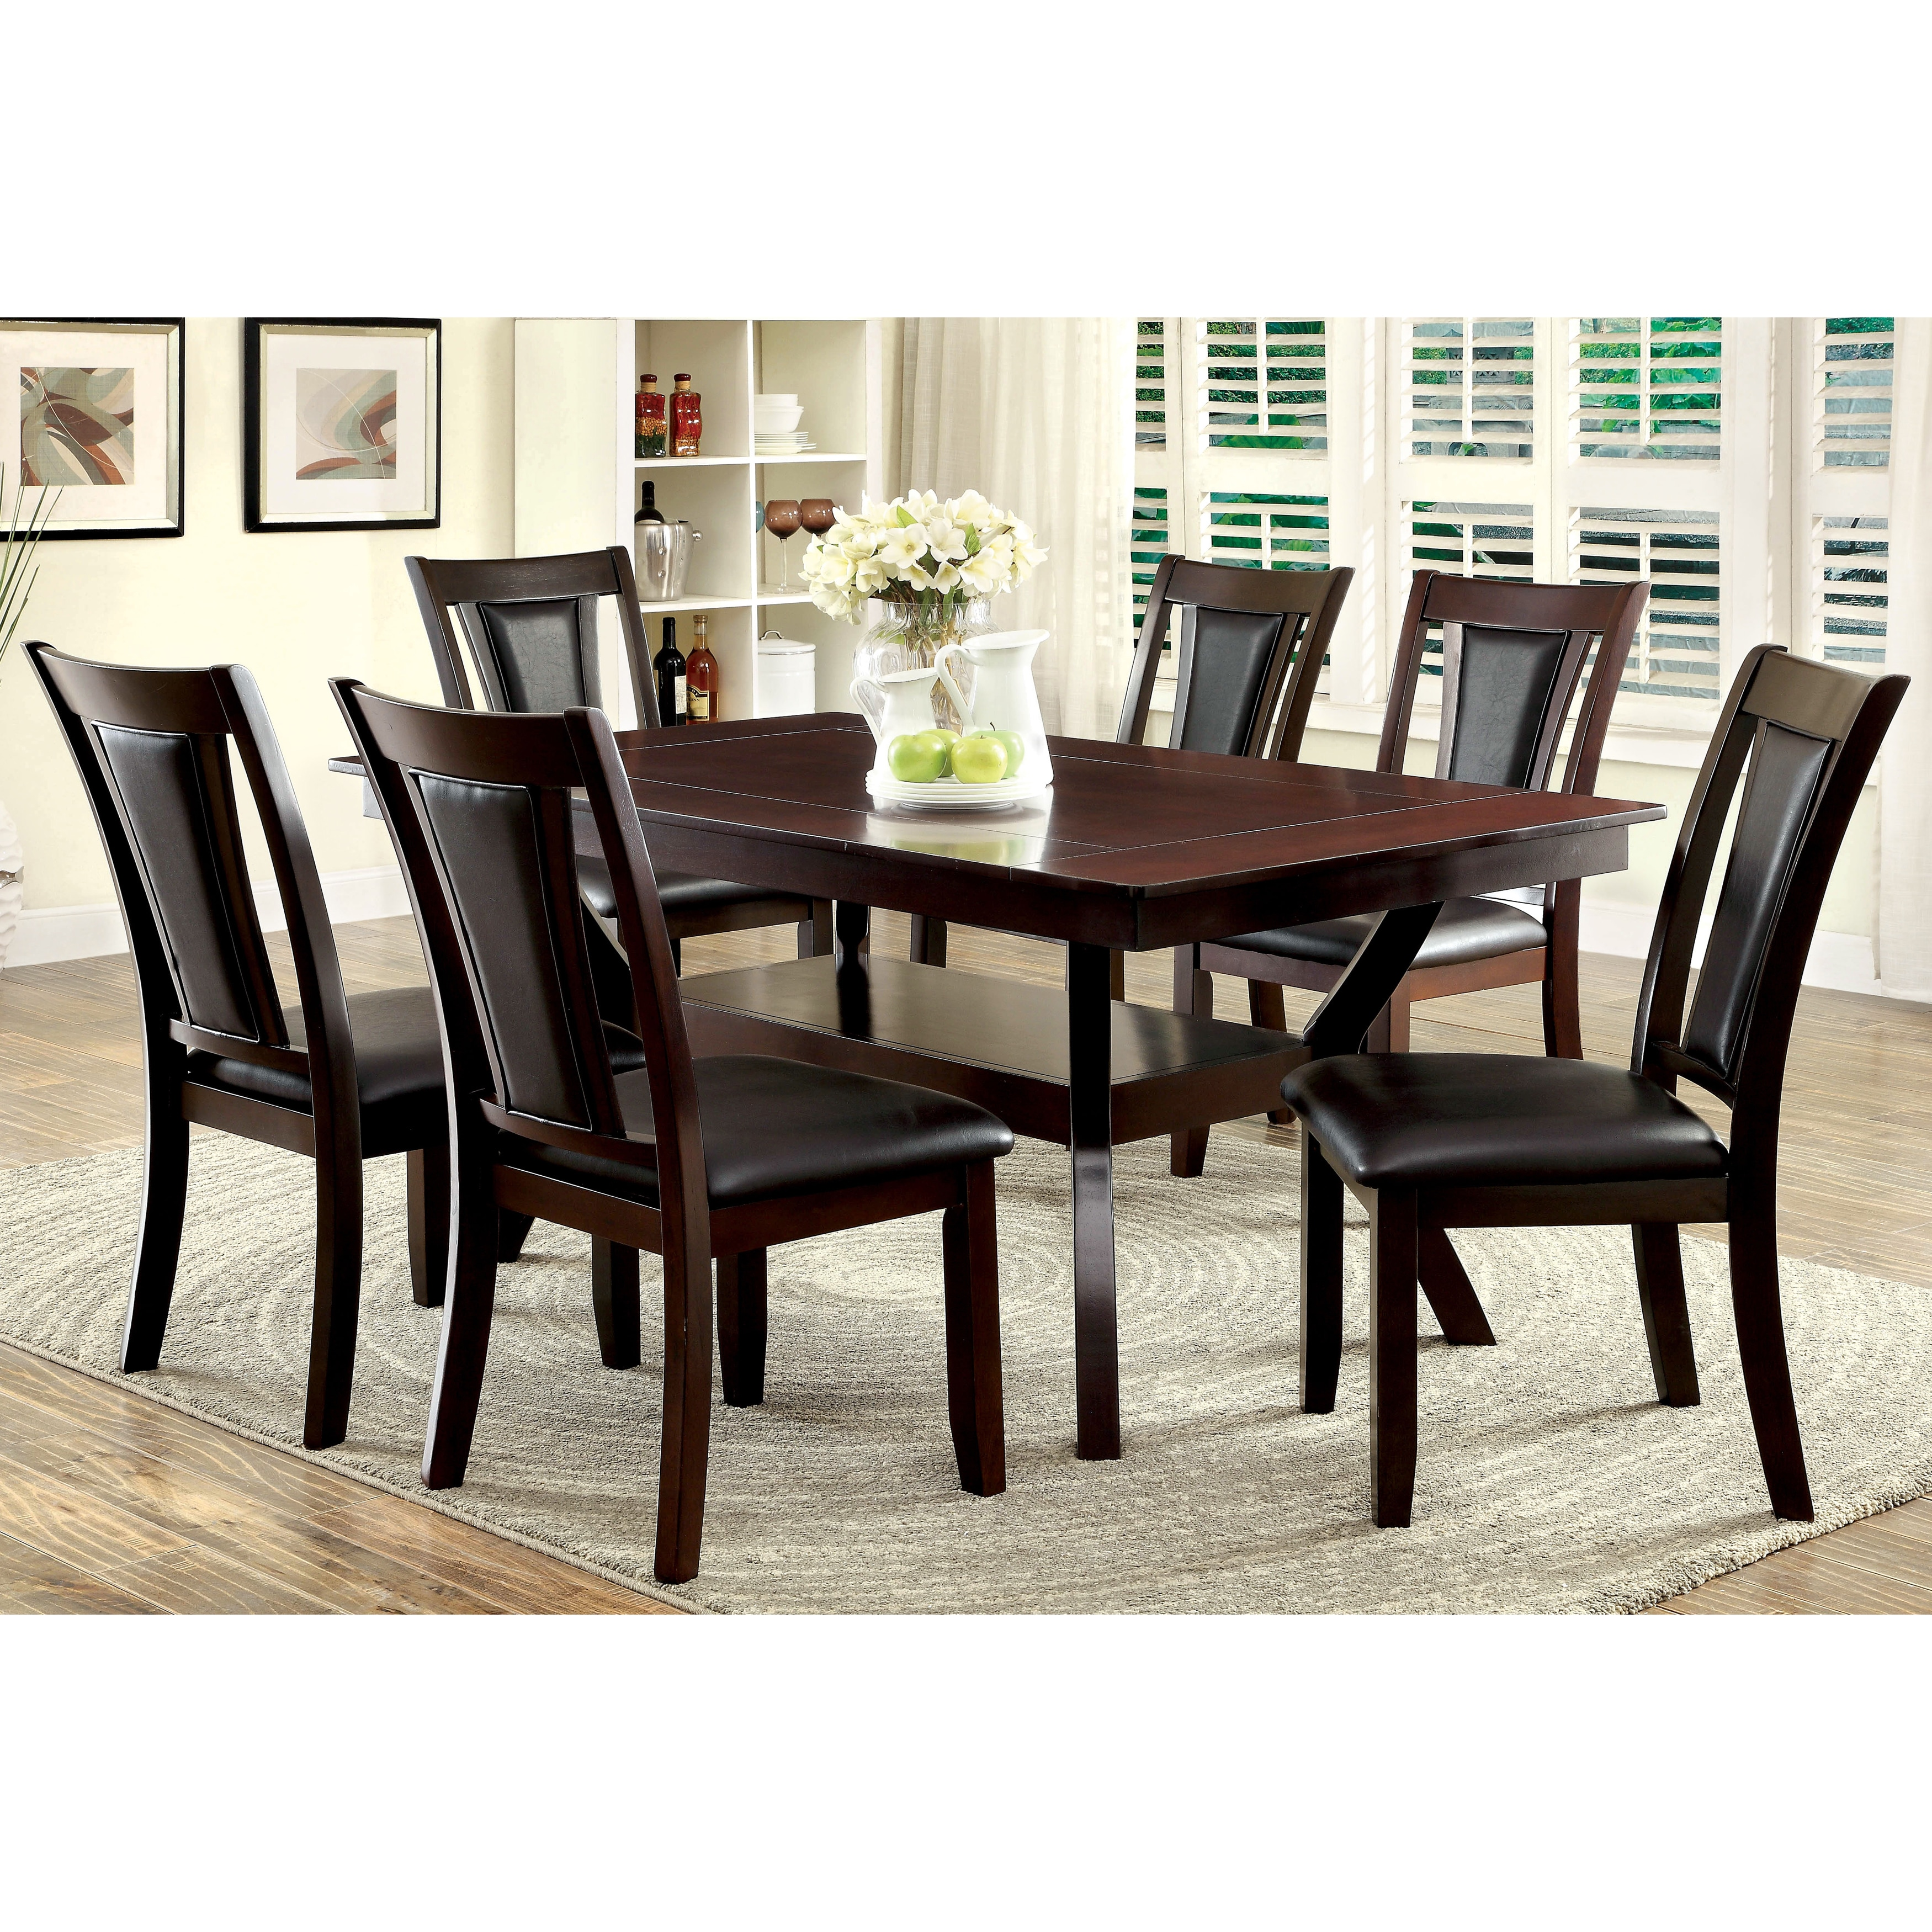 Furniture of America Dionne Dark Cherry Dining Table (Woo...